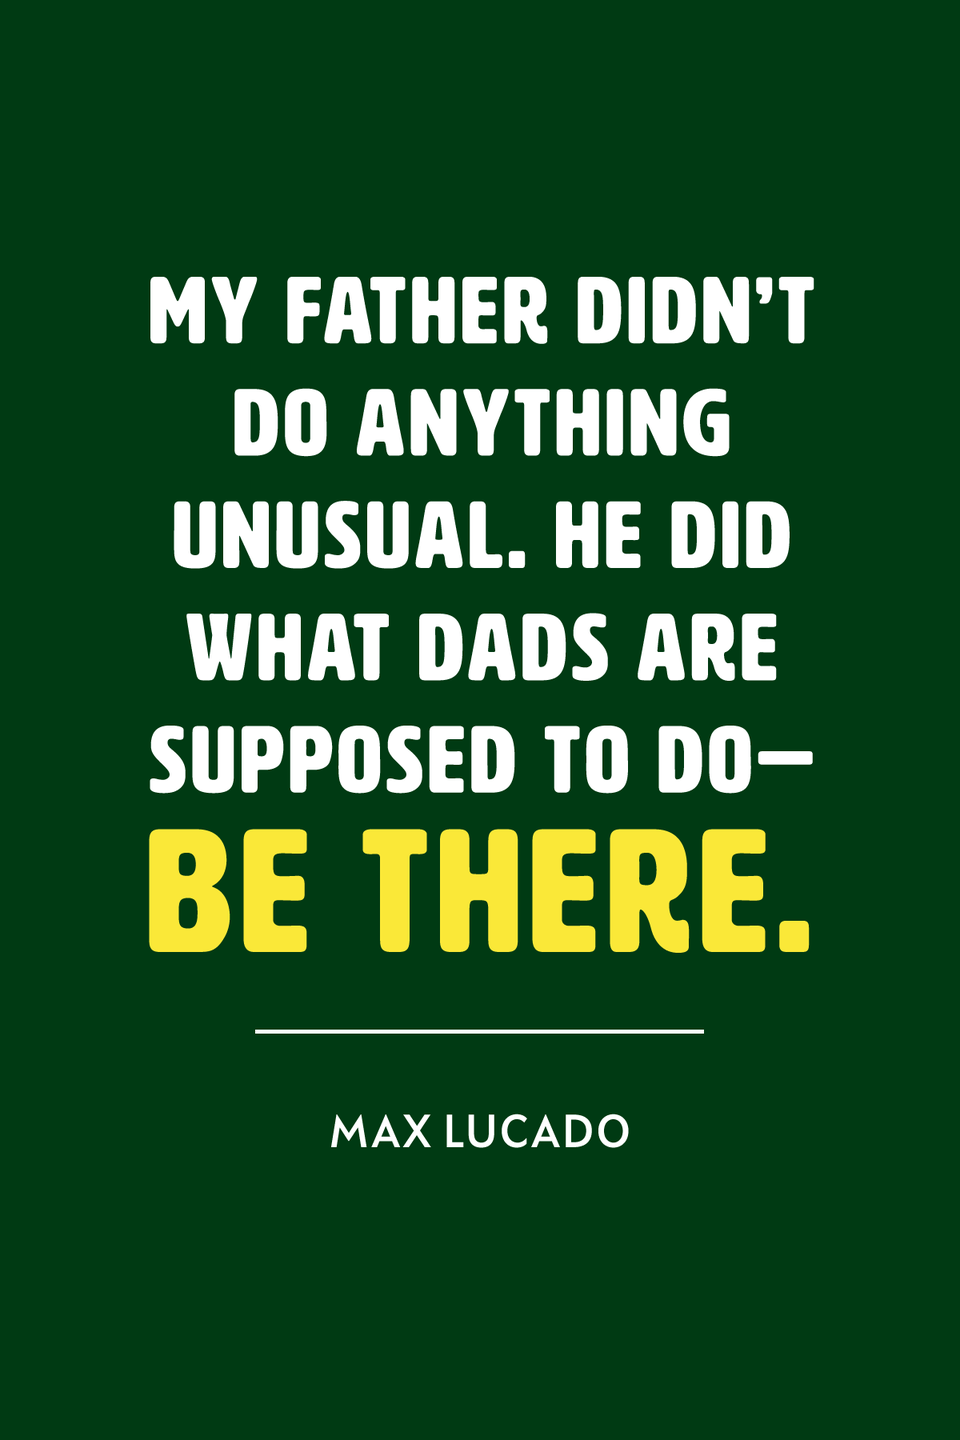 """<p>""""My father didn't do anything unusual. He did what dads are supposed to do—be there,"""" the best-selling Christian author wrote on <a href=""""https://maxlucado.com/what-makes-a-good-dad/"""" rel=""""nofollow noopener"""" target=""""_blank"""" data-ylk=""""slk:his website"""" class=""""link rapid-noclick-resp"""">his website</a>. </p>"""